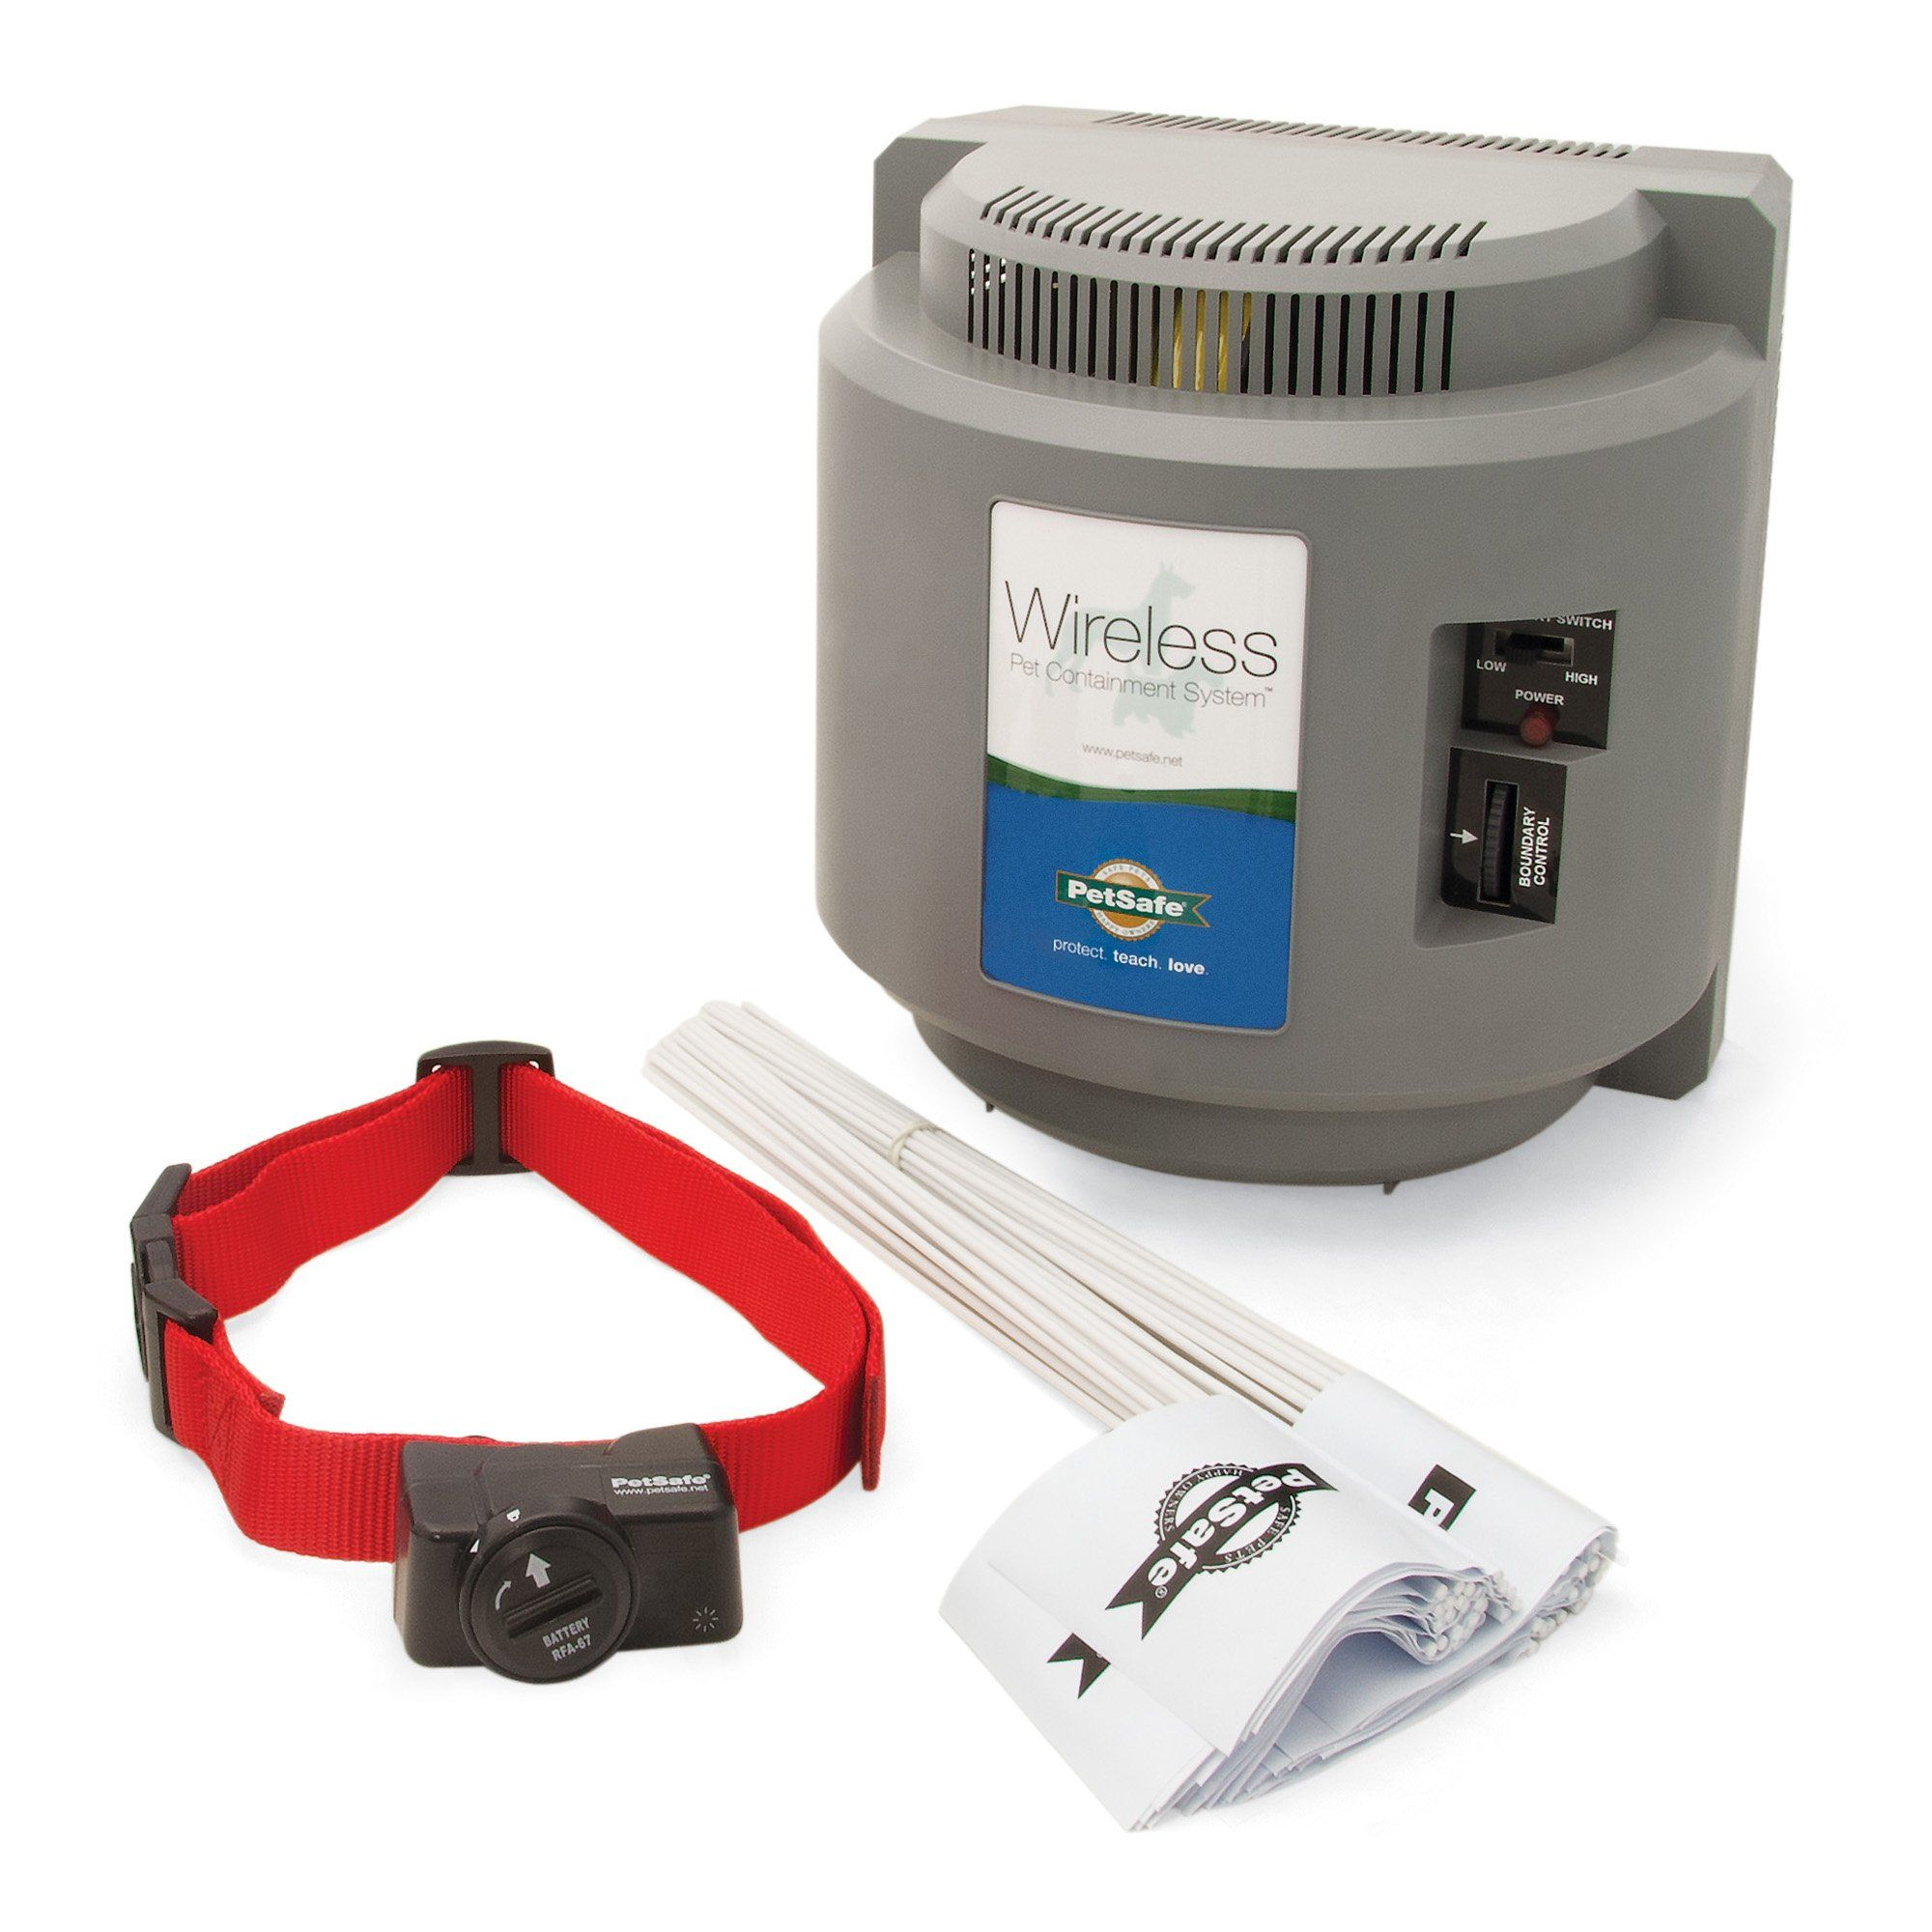 PetSafe Wireless Fence Pet Containment System Covers up to